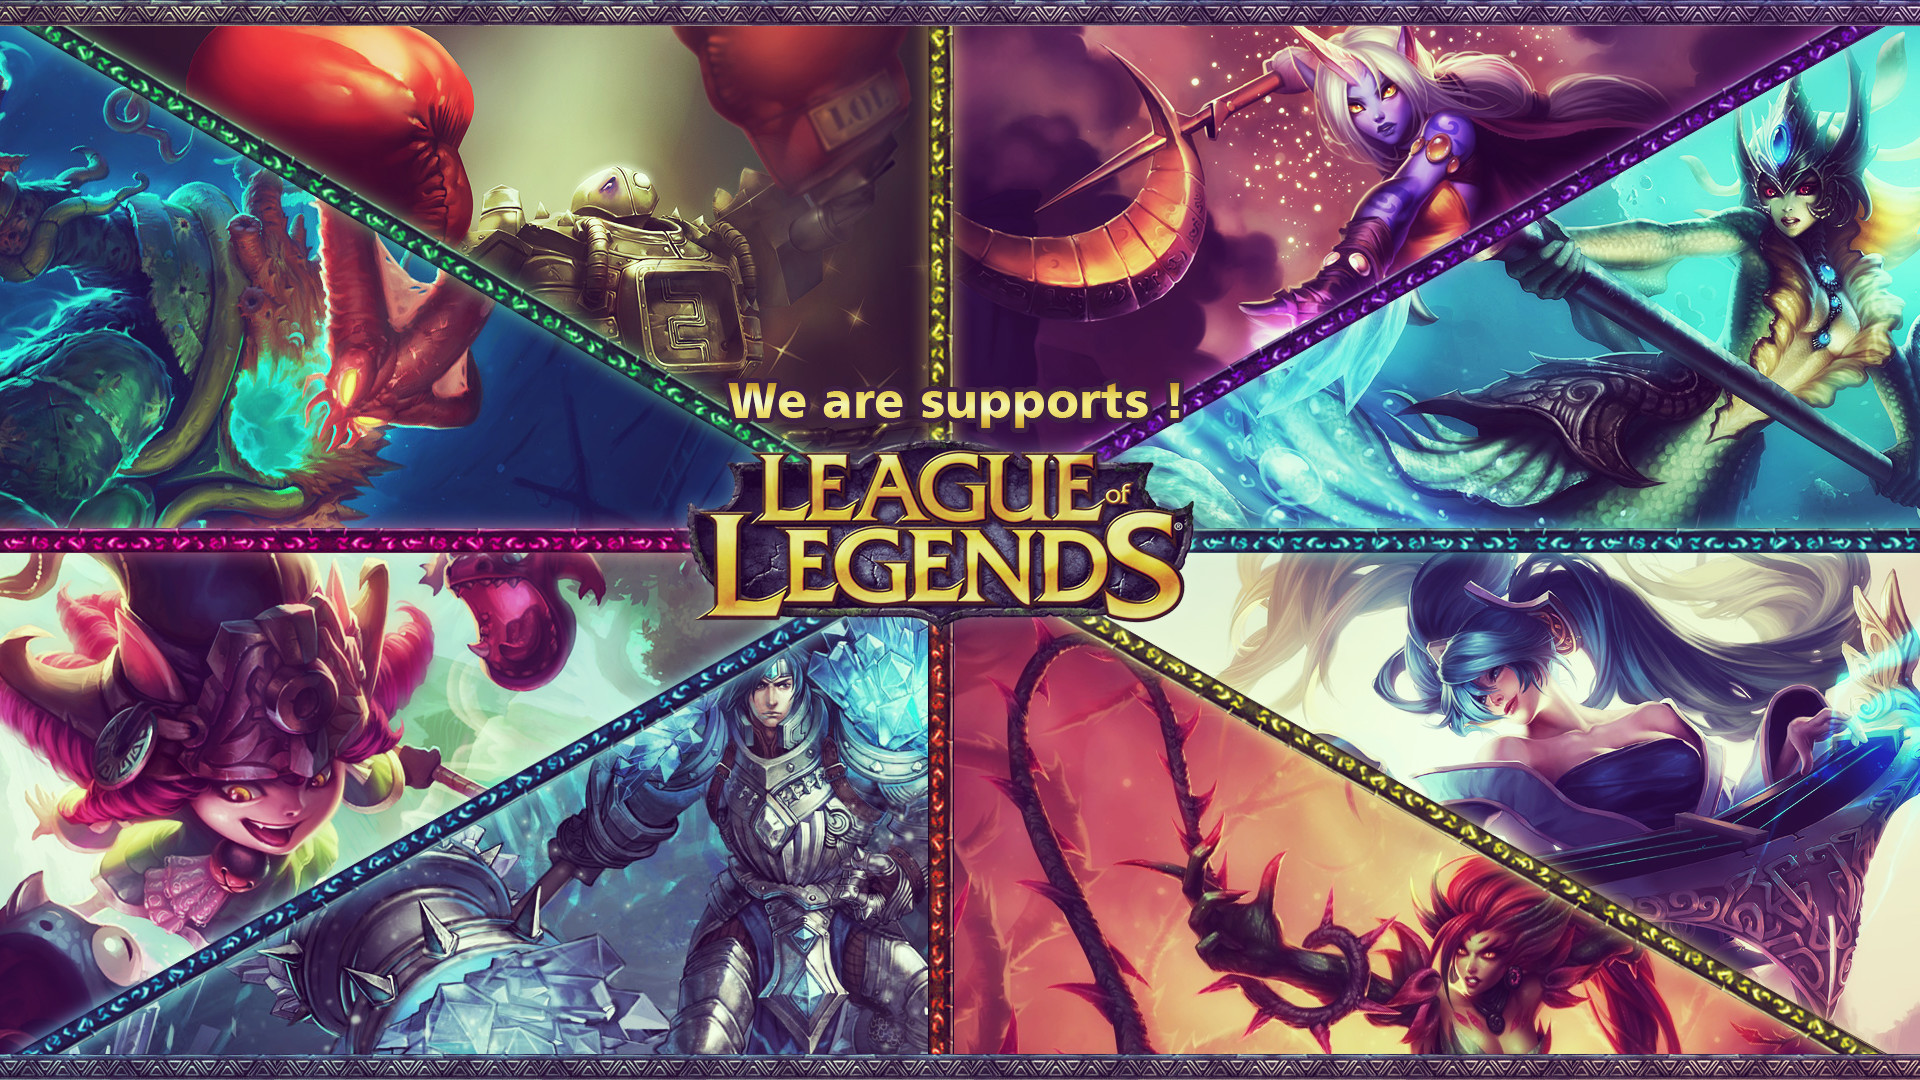 League of Legendes Supports Wallpaper by Utitake League of Legendes  Supports Wallpaper by Utitake